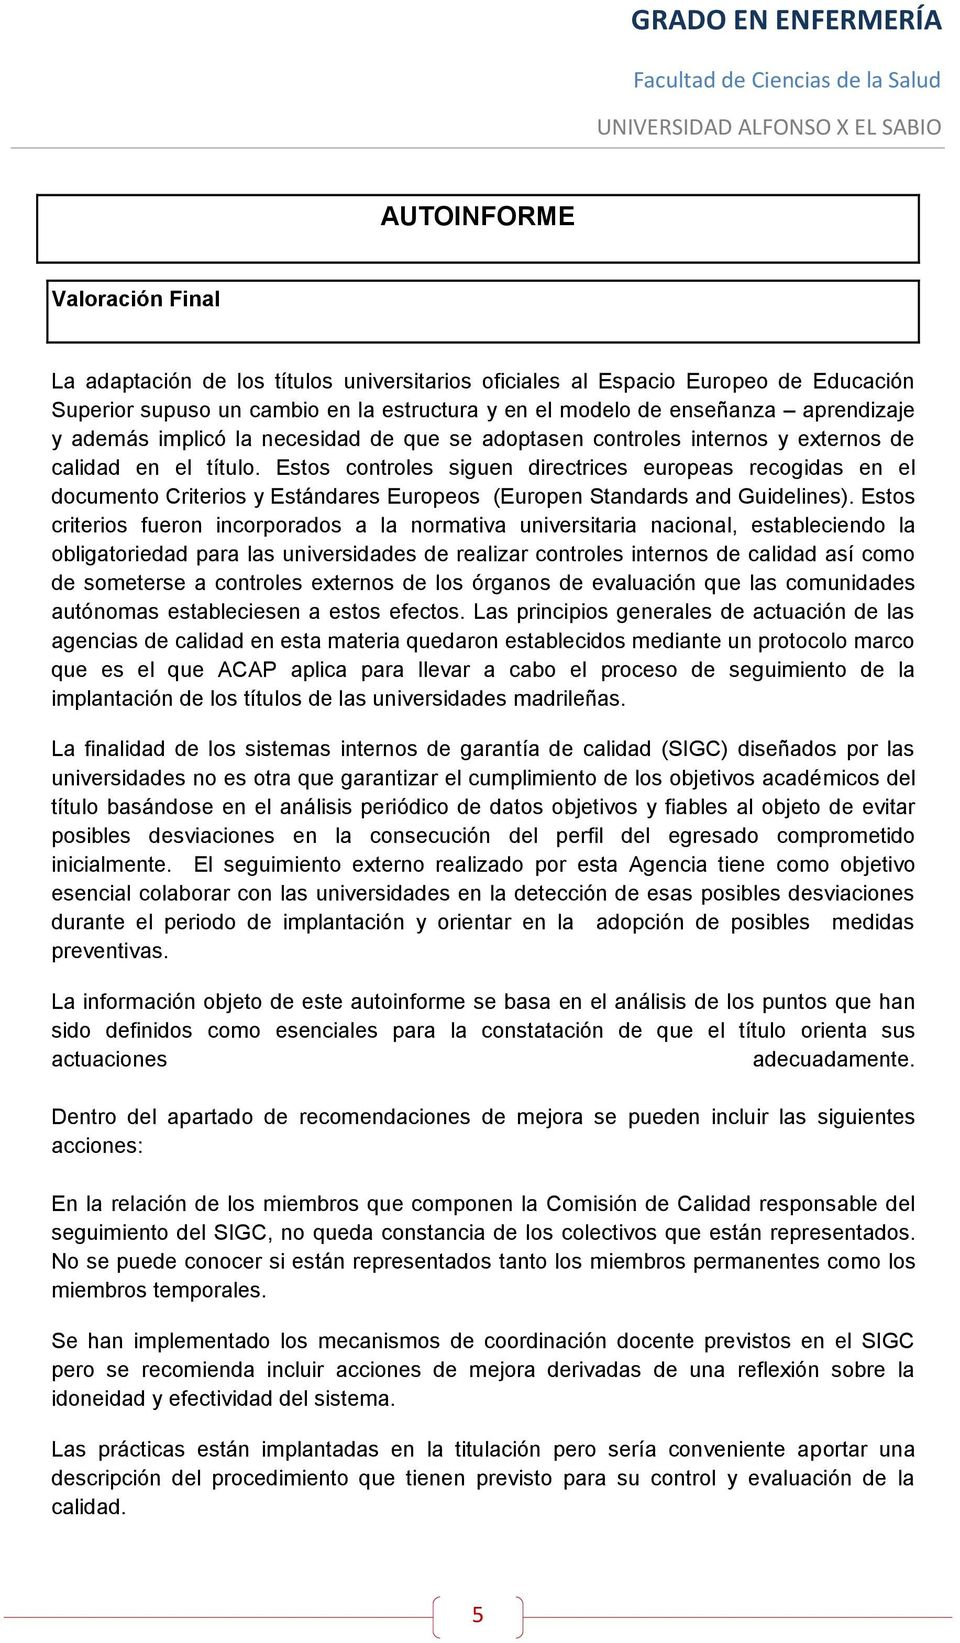 Estos controles siguen directrices europeas recogidas en el documento Criterios y Estándares Europeos (Europen Standards and Guidelines).